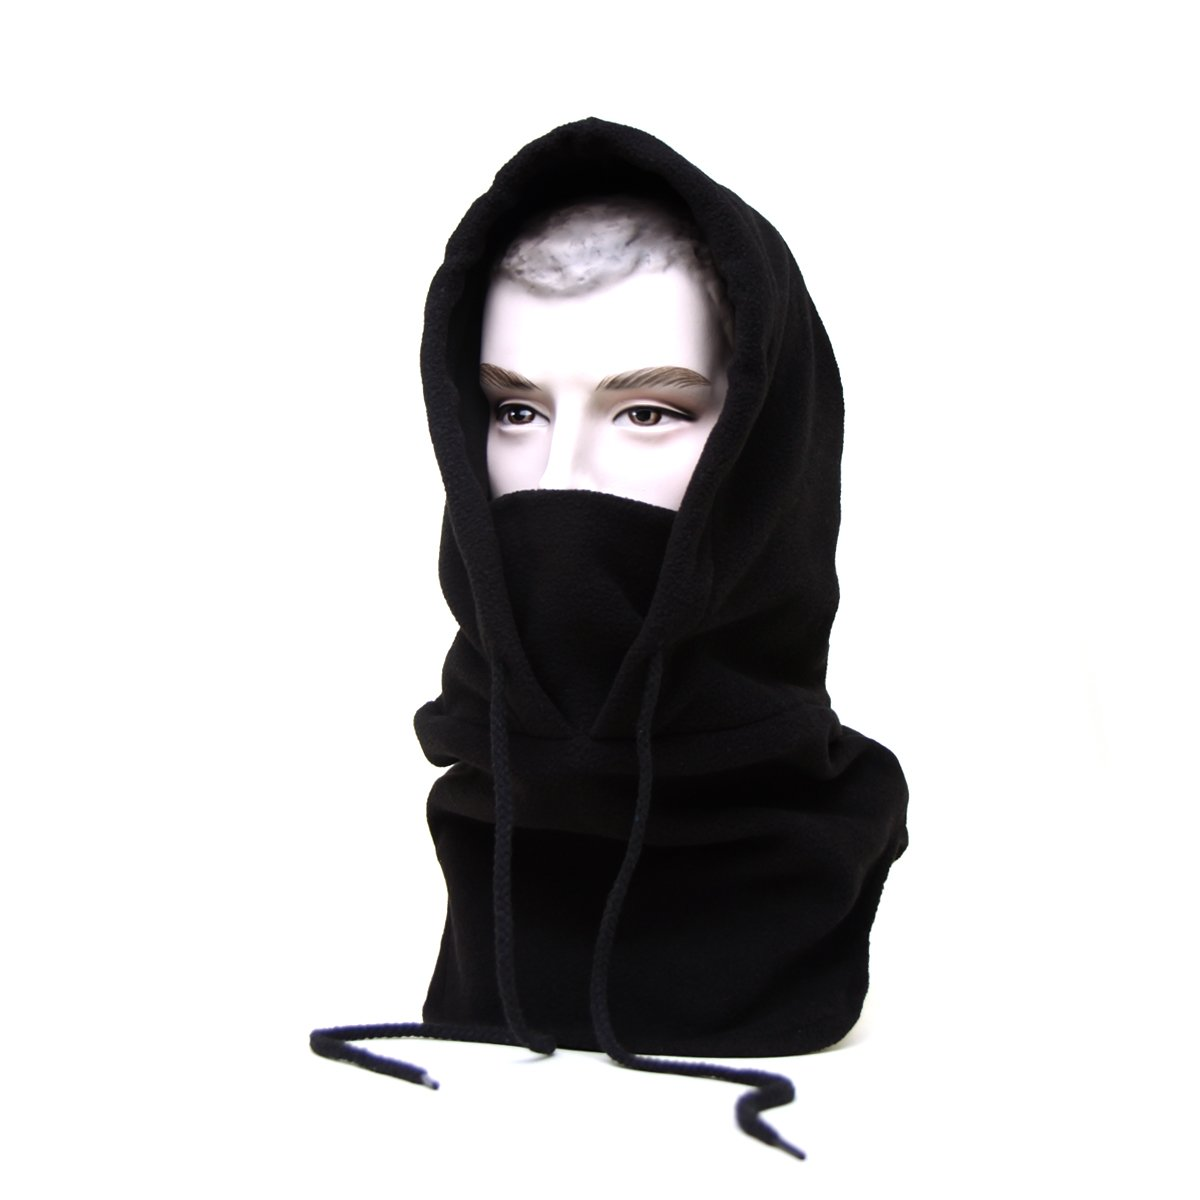 Face mask hoodies